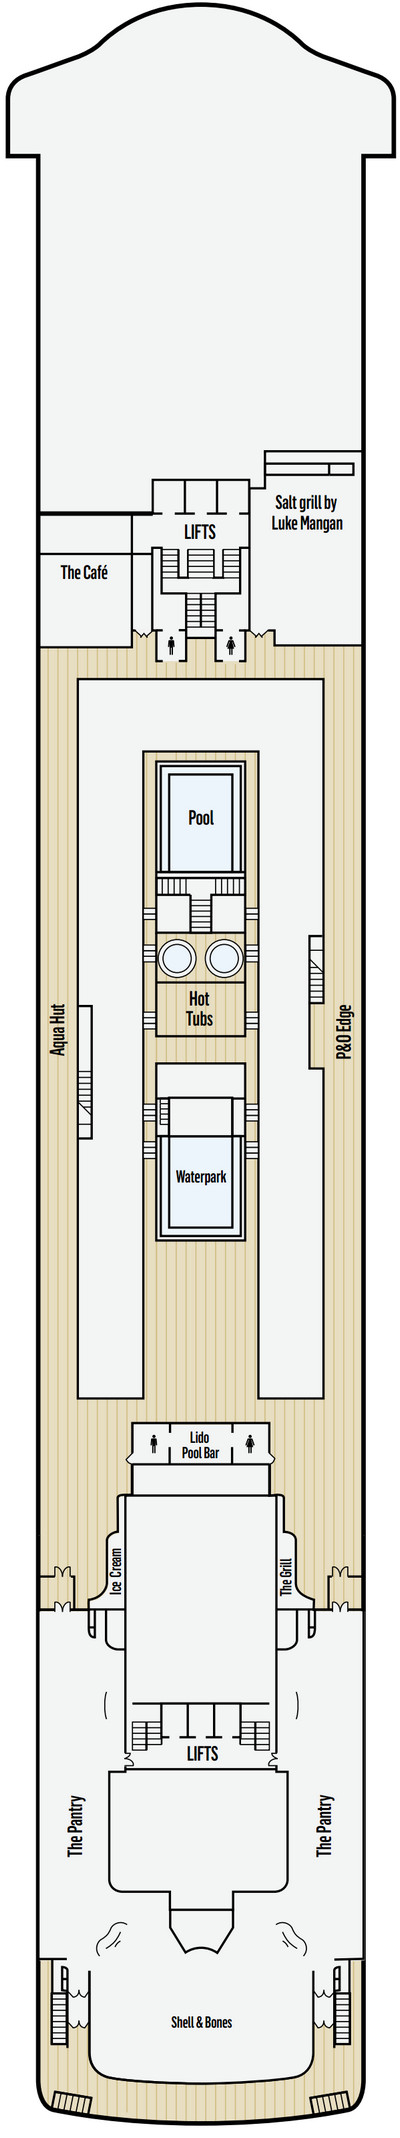 P&O - Pacific Dawn Deck 12 layout